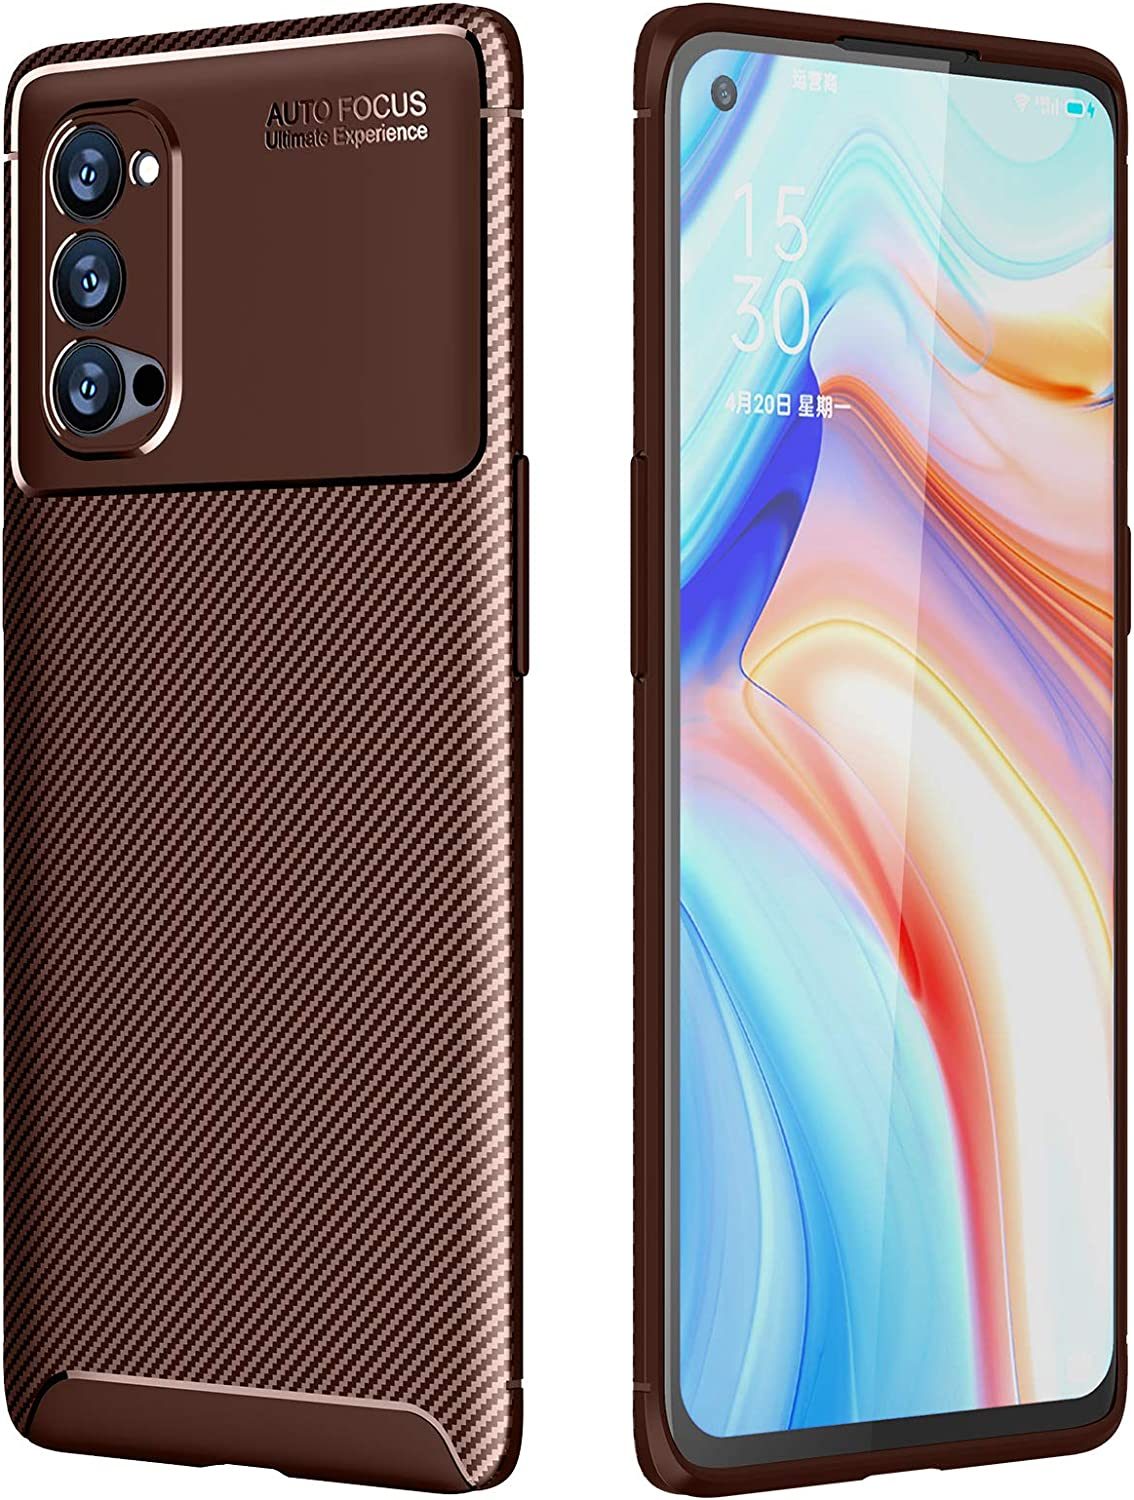 Silicone *Pull Up Tab Feature Suncase Case Compatible with Oppo Reno 4 Pro 5G with Additional Case Shell Bumper Mobile Phone Case Leather Protective Case in Antique Coffee